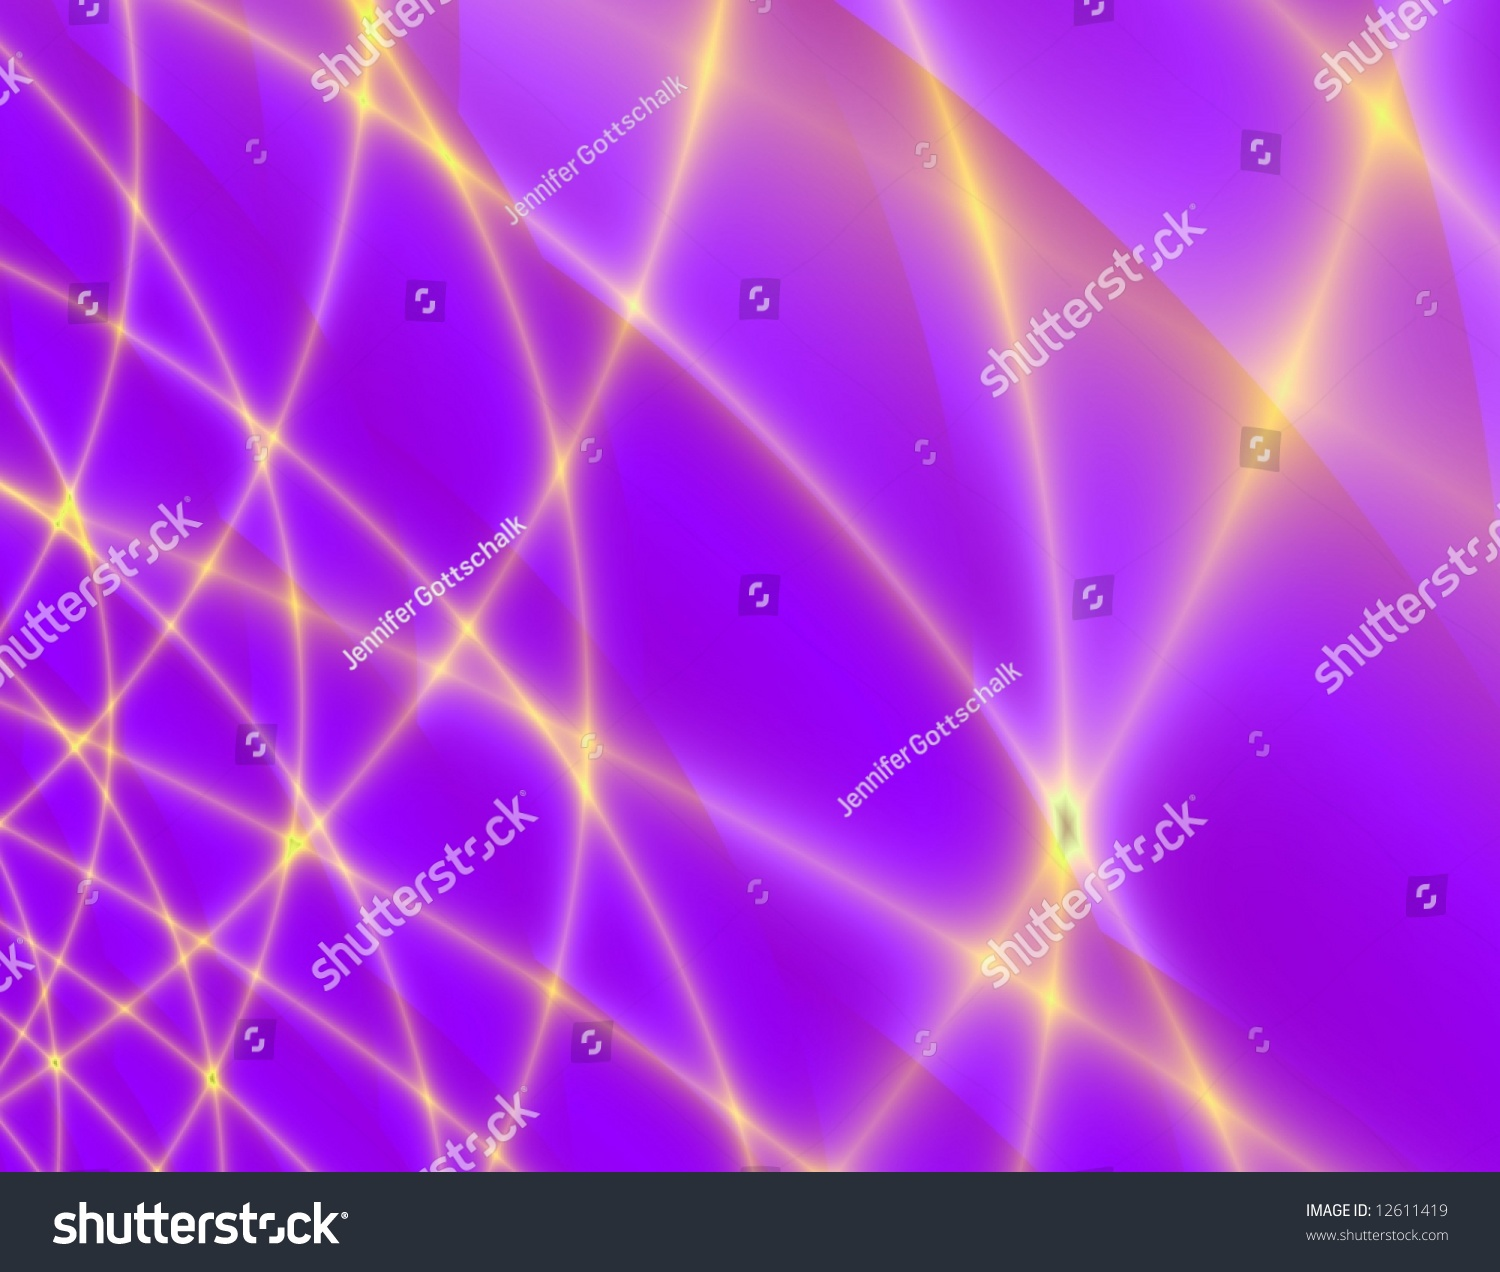 Purple And Gold Woven Strands Of Light (Abstract Background) Stock Photo 12611419 : Shutterstock